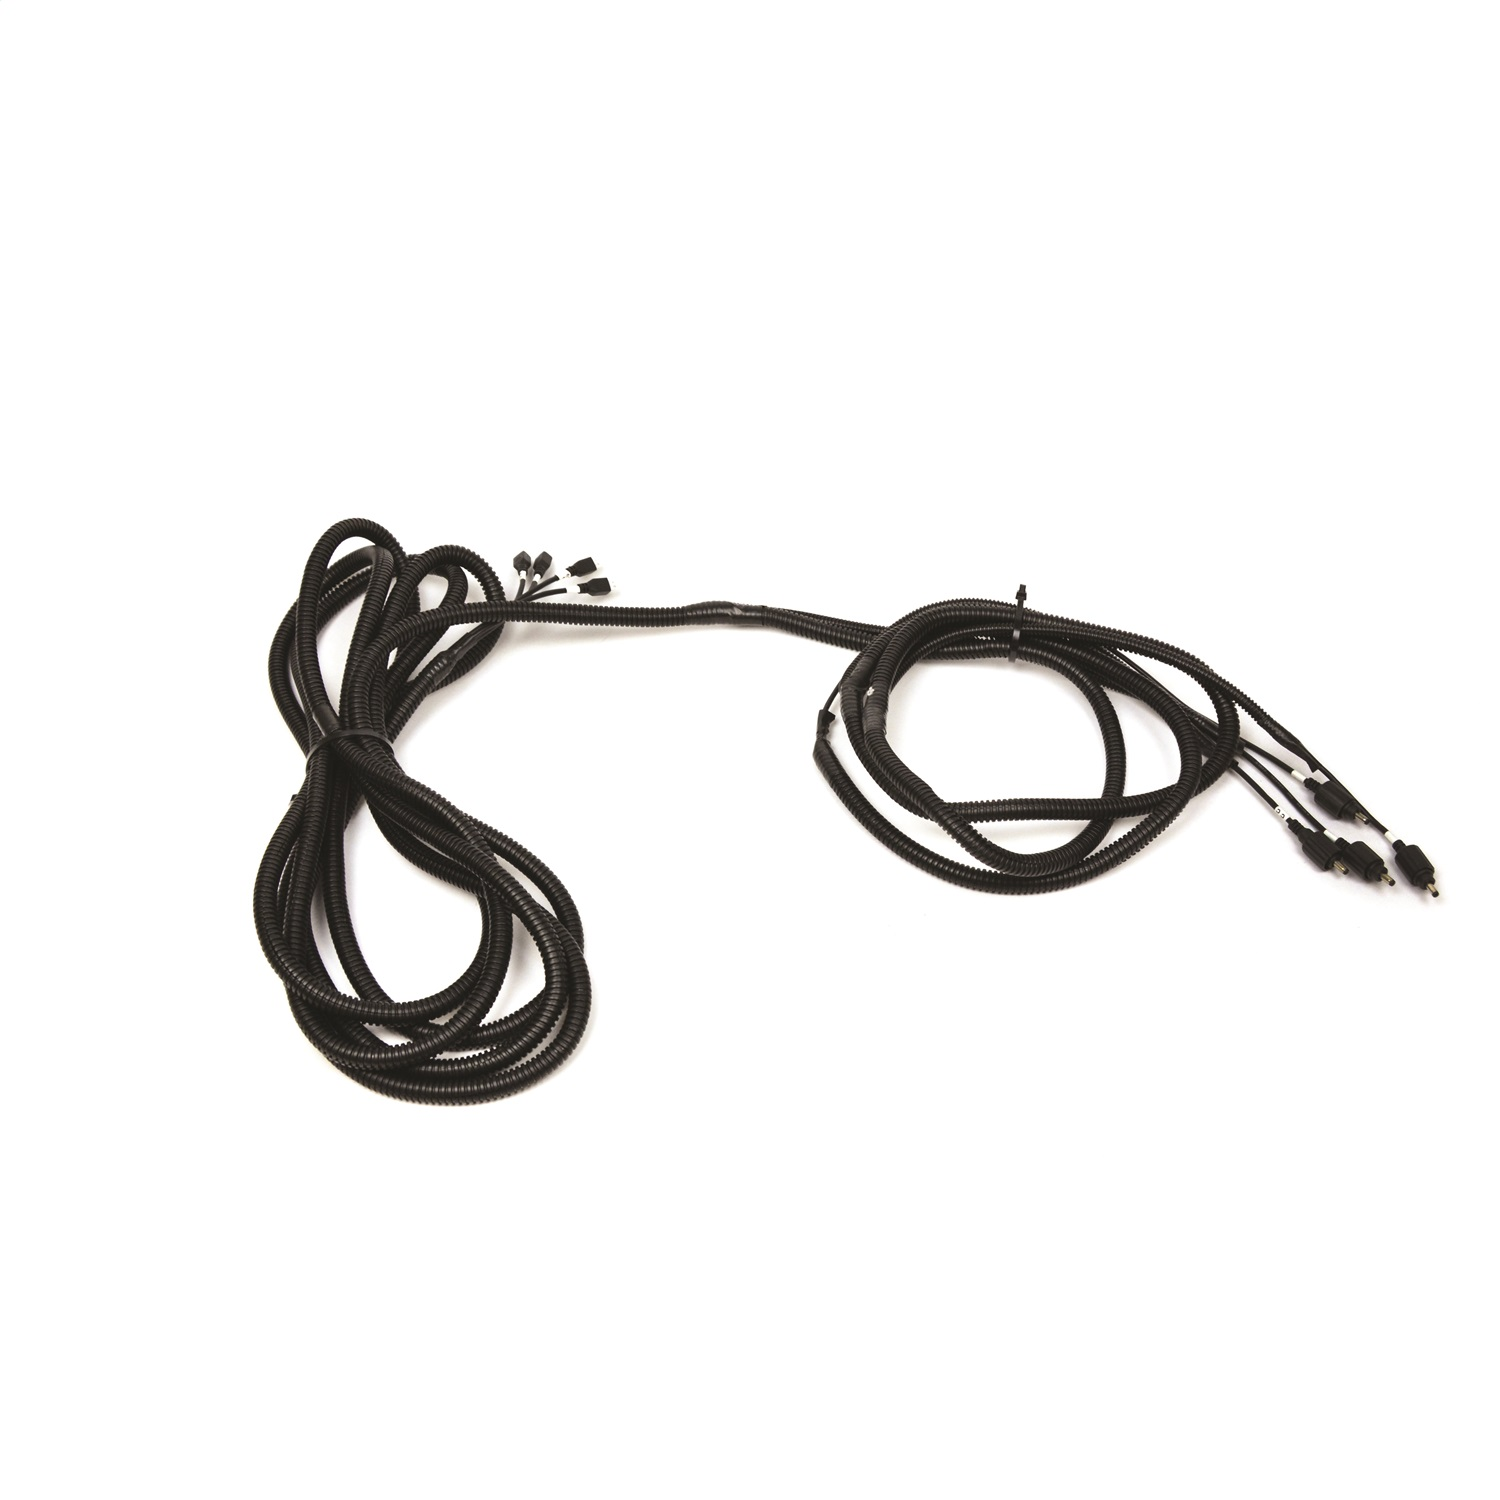 Brandmotion Backup Sensor Extension Harness